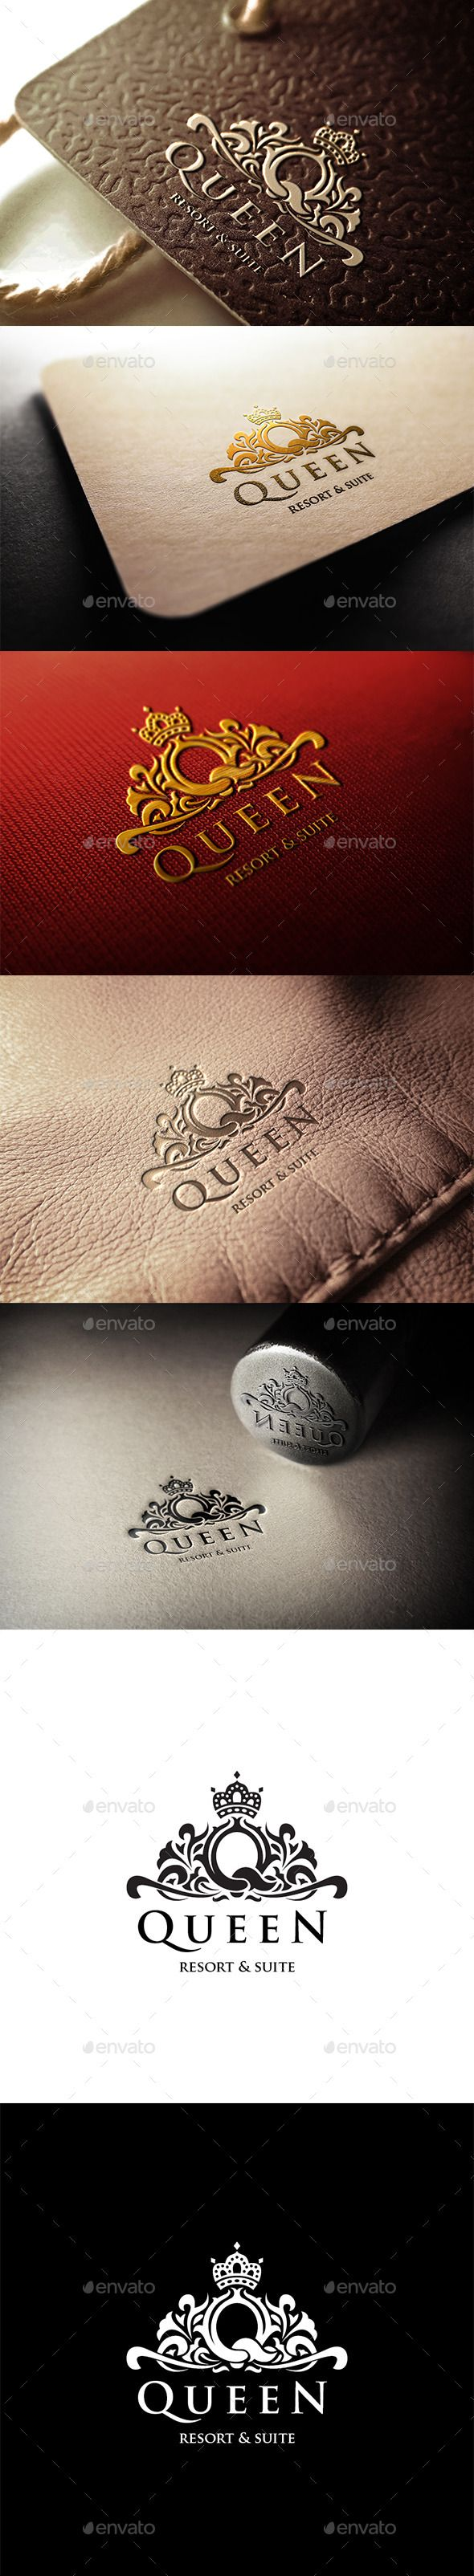 Queen Resort Logo Template #design Download: http://graphicriver.net/item/queen-resort-logo/11300176?ref=ksioks